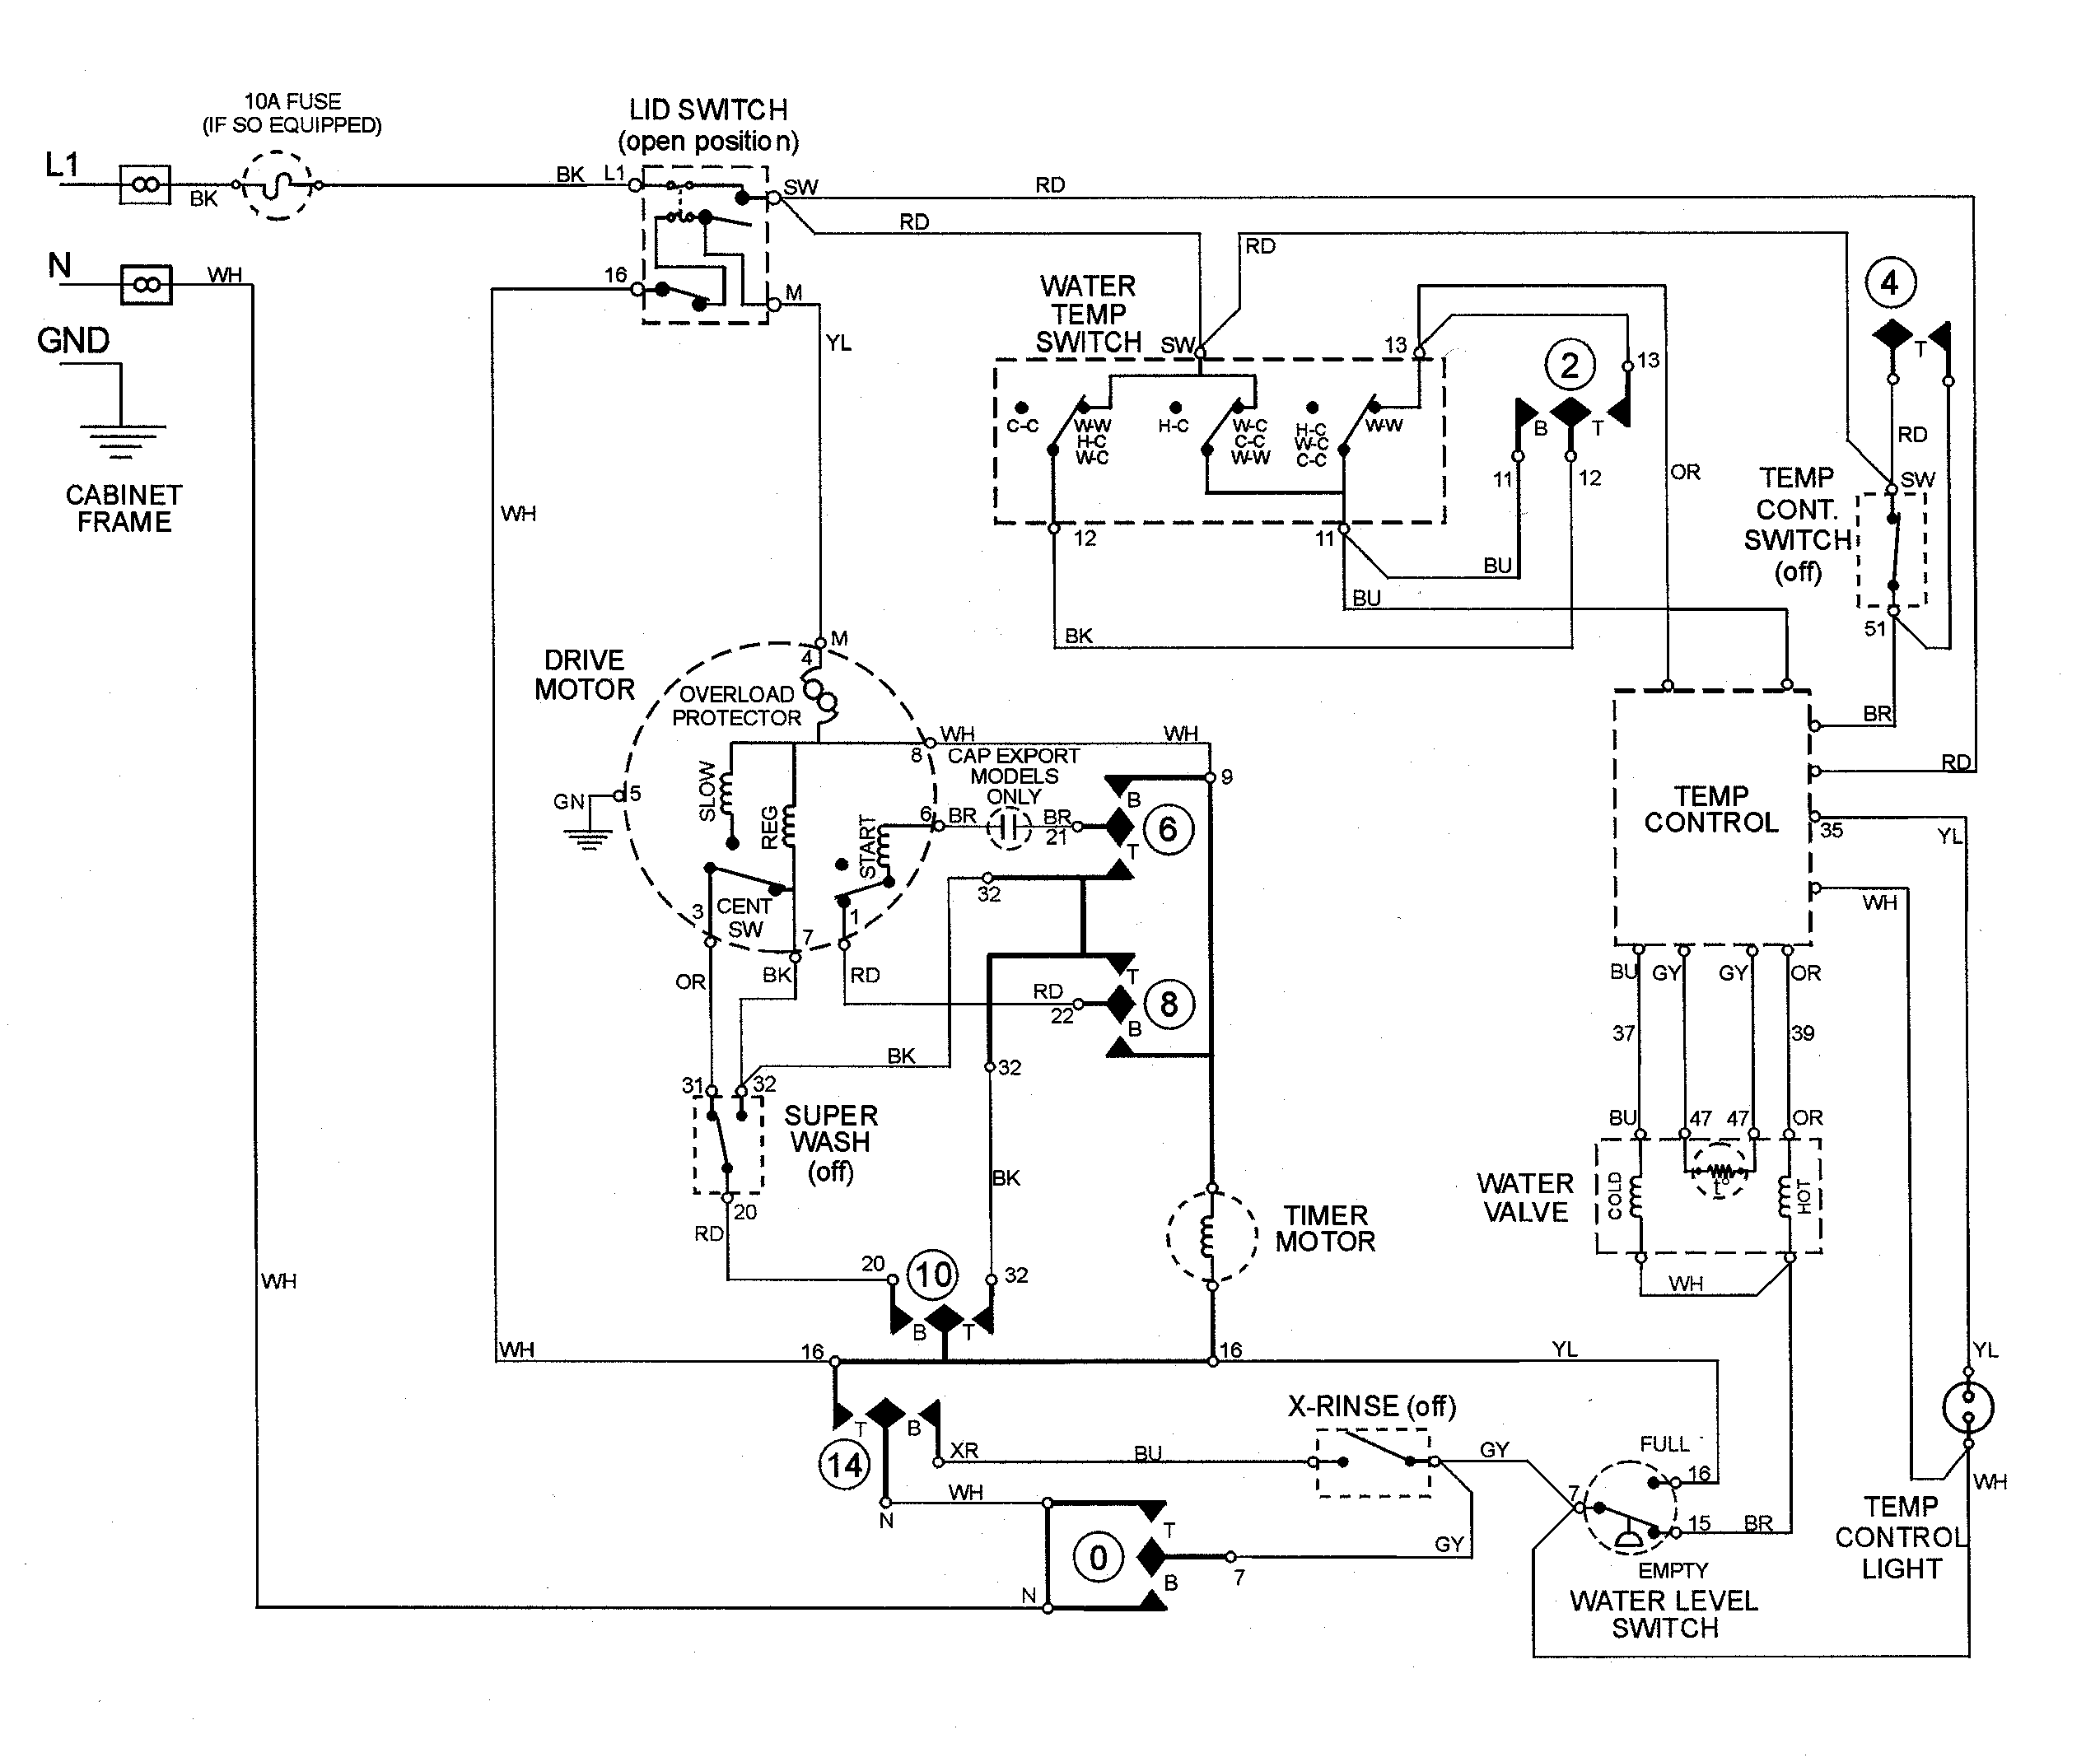 dbfe84c1294a289a6a6d42ba64109ee4 ge washing machine motor wiring diagram, ge, wiring diagram and washing machine motor wiring diagram at soozxer.org